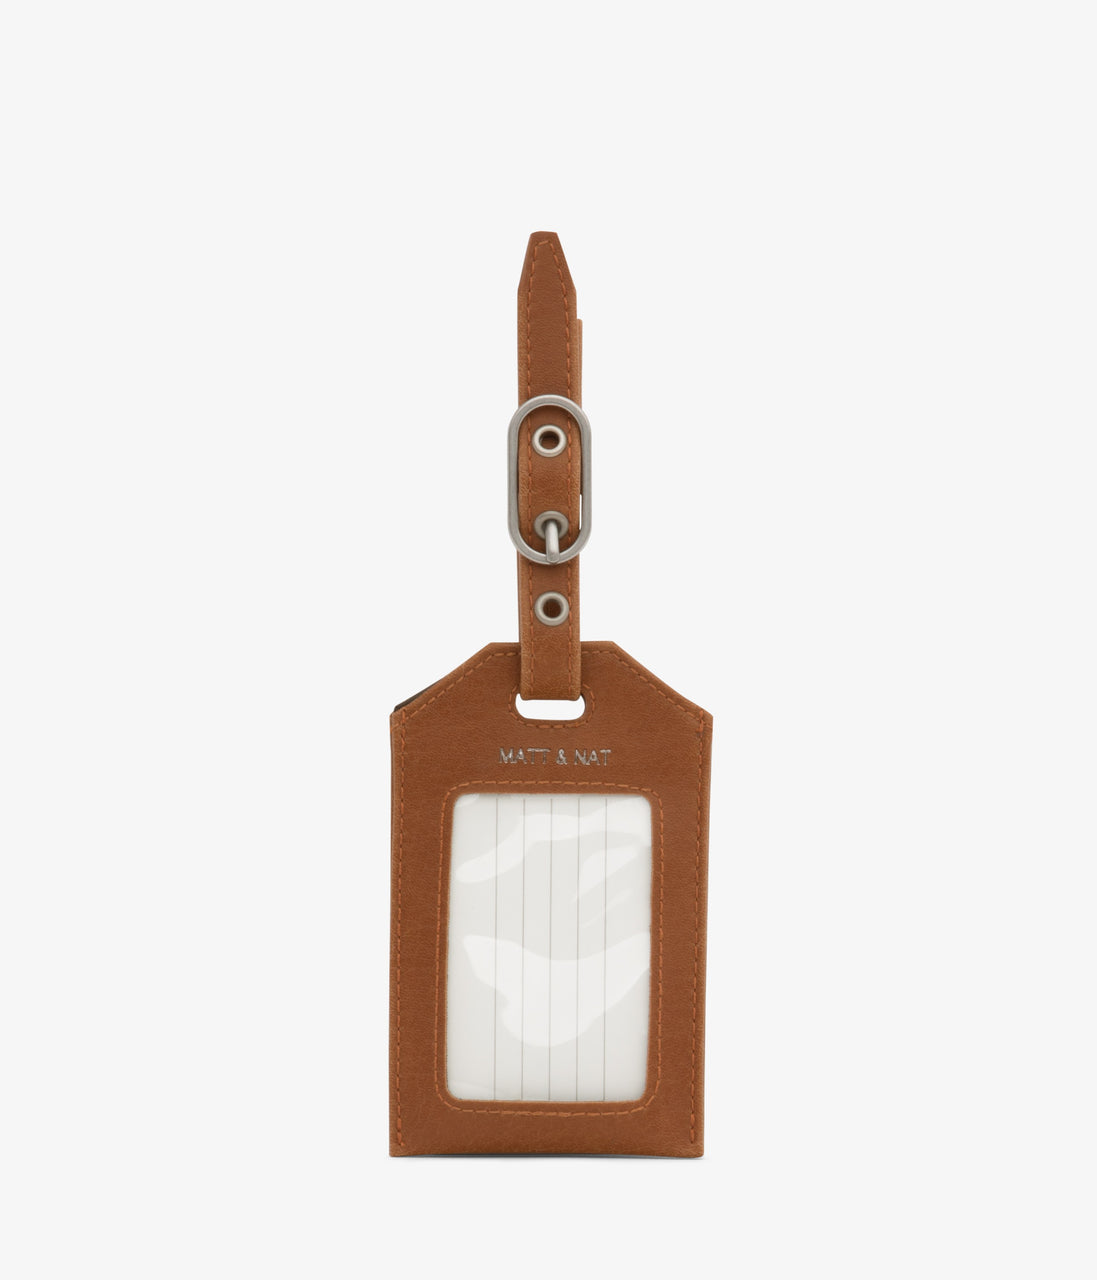 Matt & Nat - Trotter Vintage Luggage Tag - Chili Matte Nickel